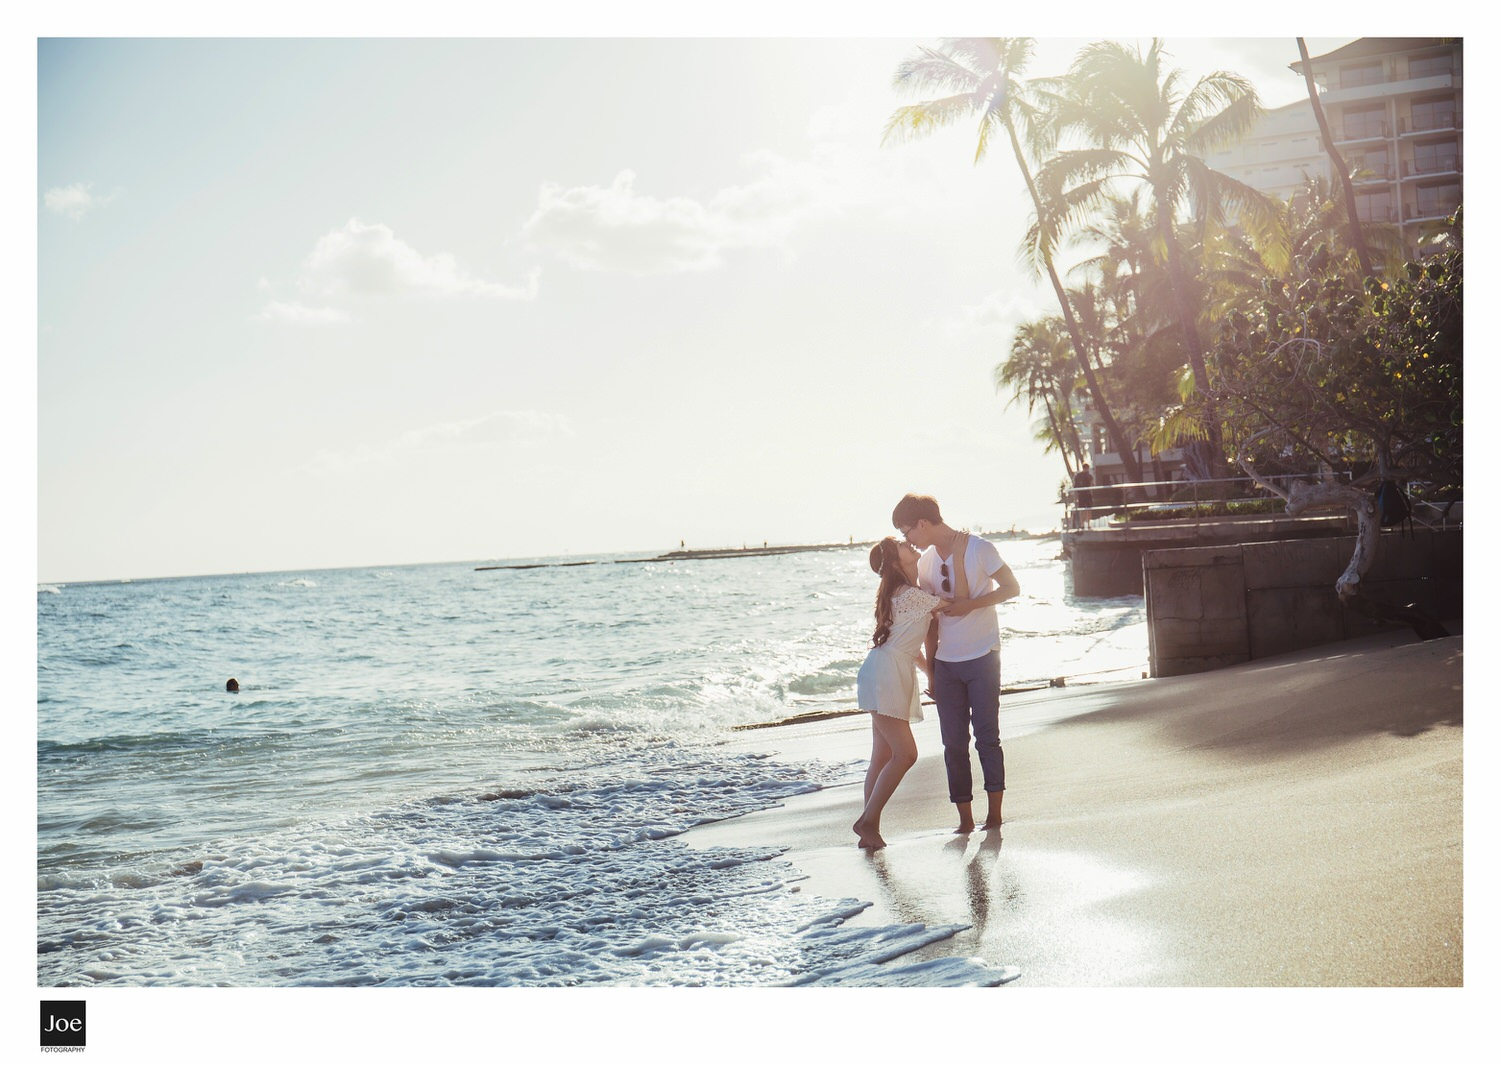 124-waikiki-beach-hawaii-pre-wedding-tiffany-tony-joe-fotography.jpg